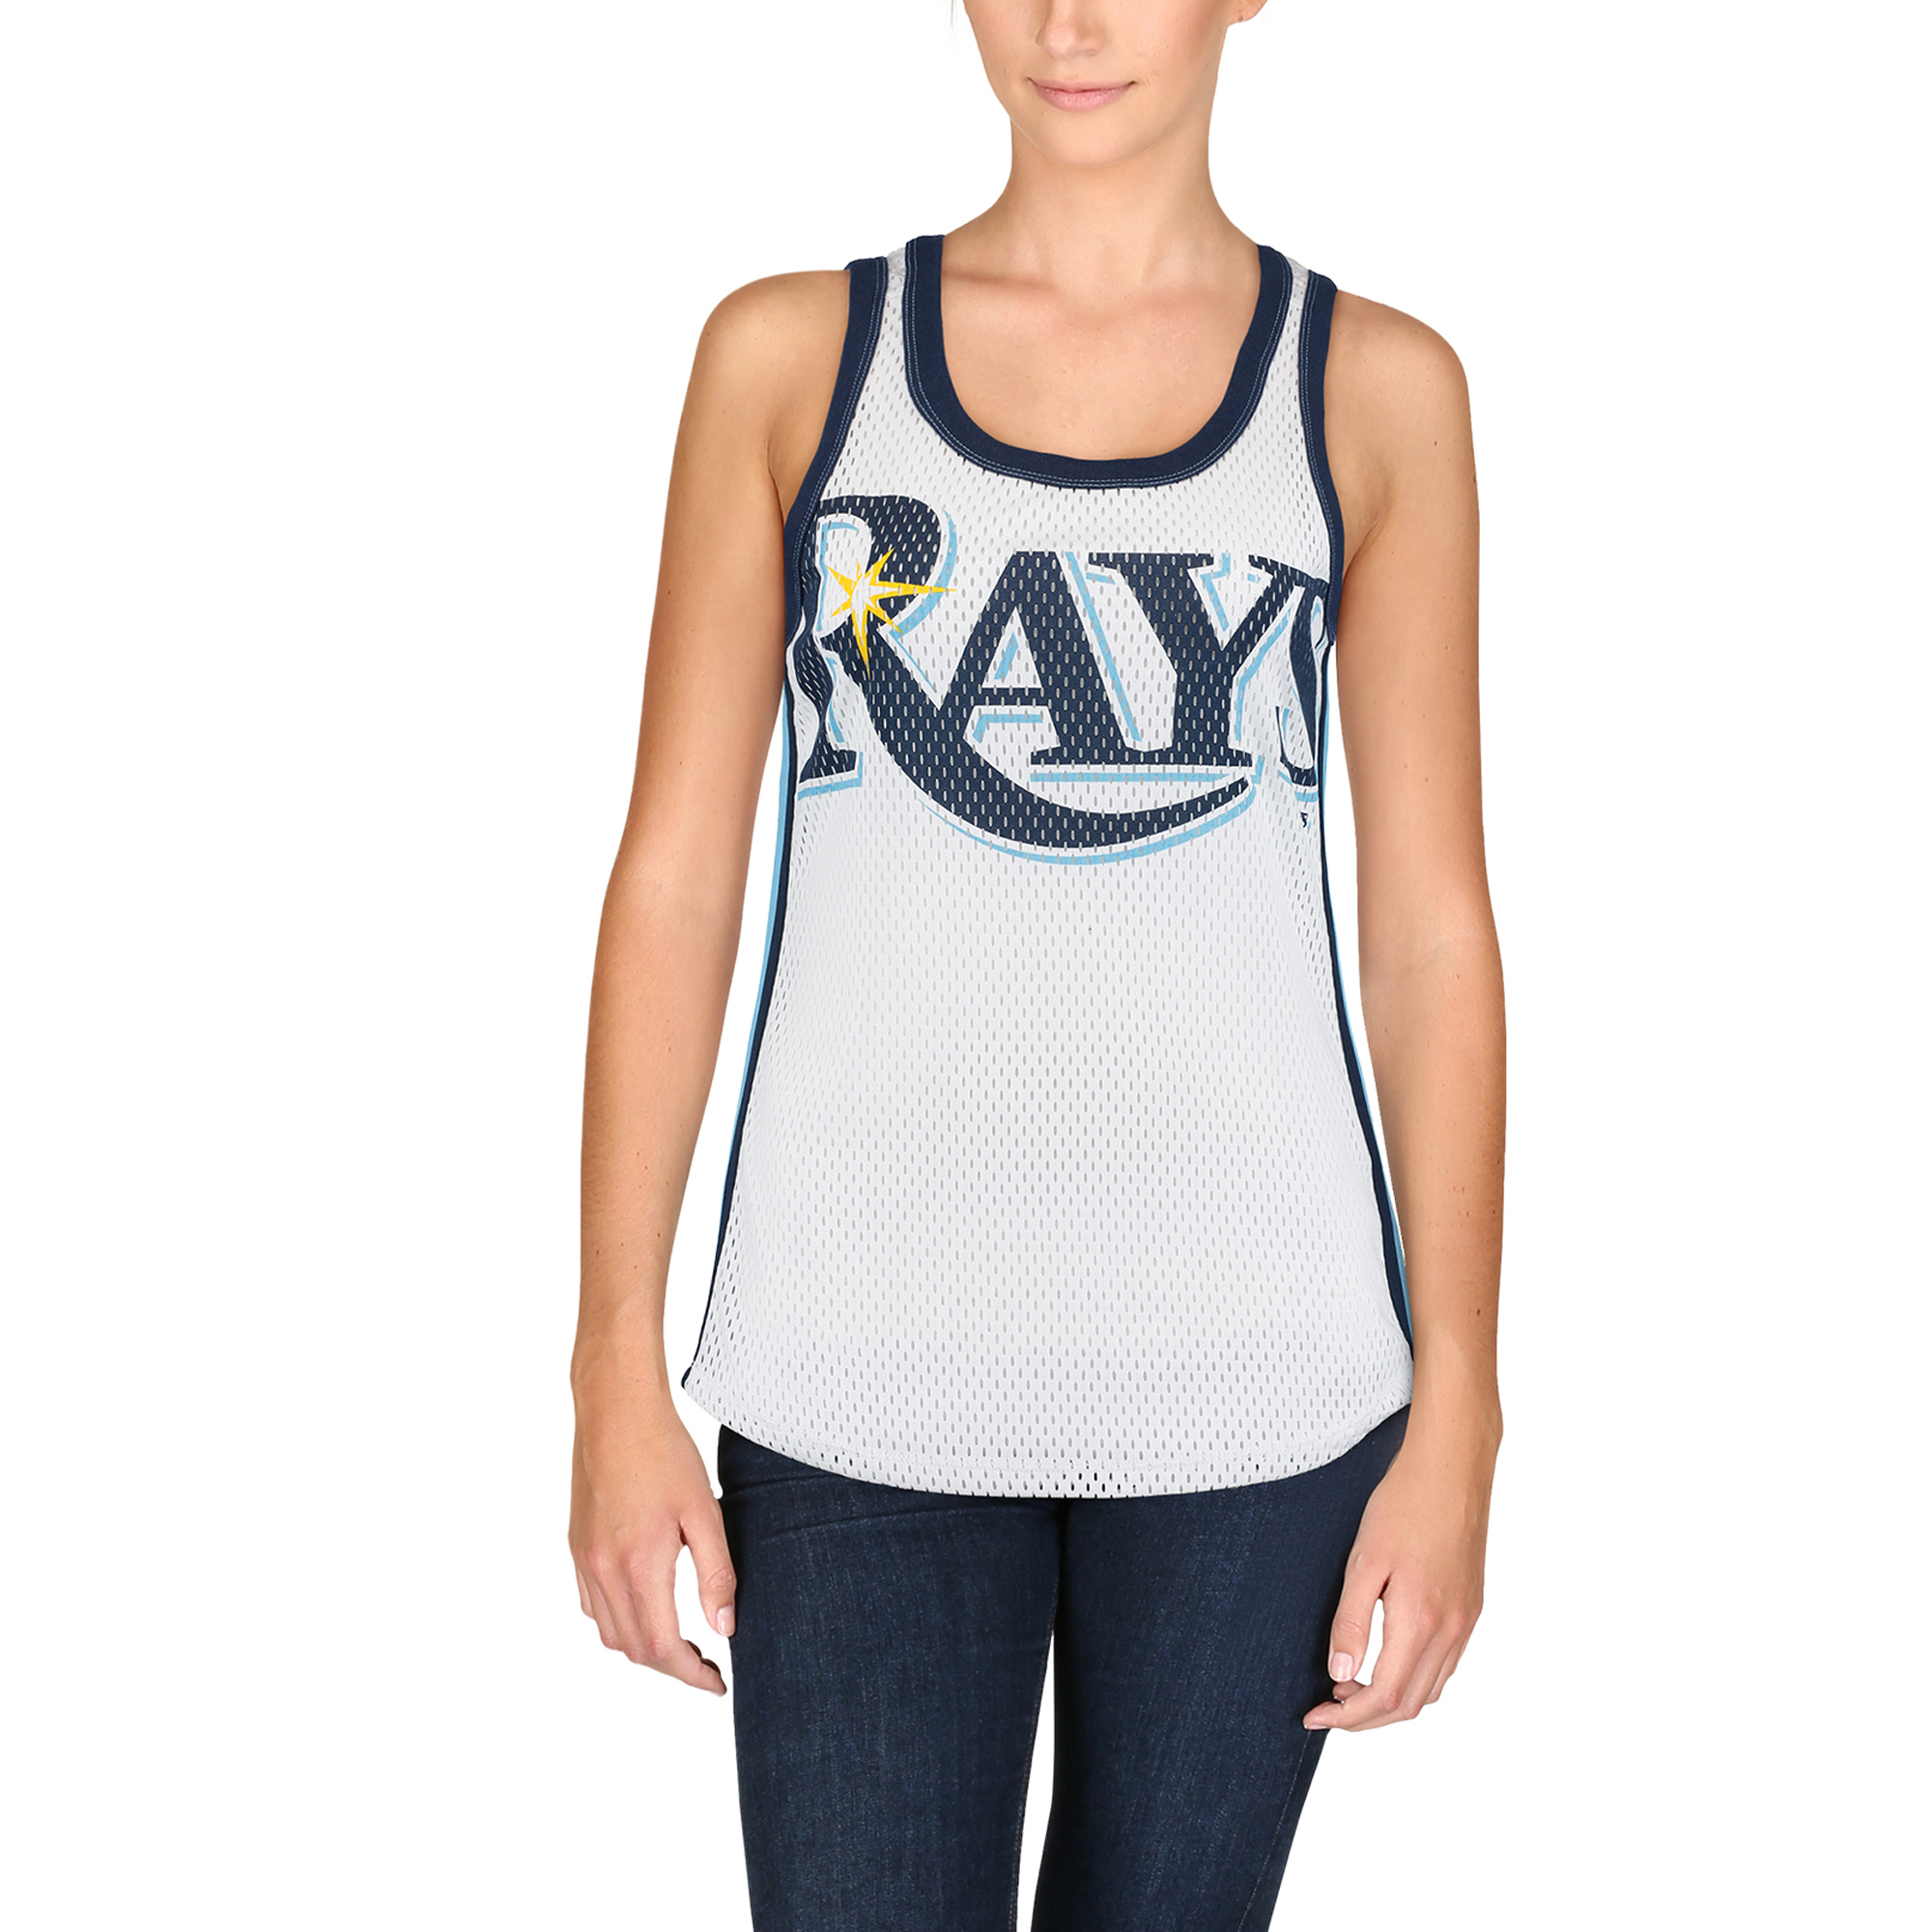 Tampa Bay Rays G-III 4Her by Carl Banks Women's Opening Day Tank Top - White